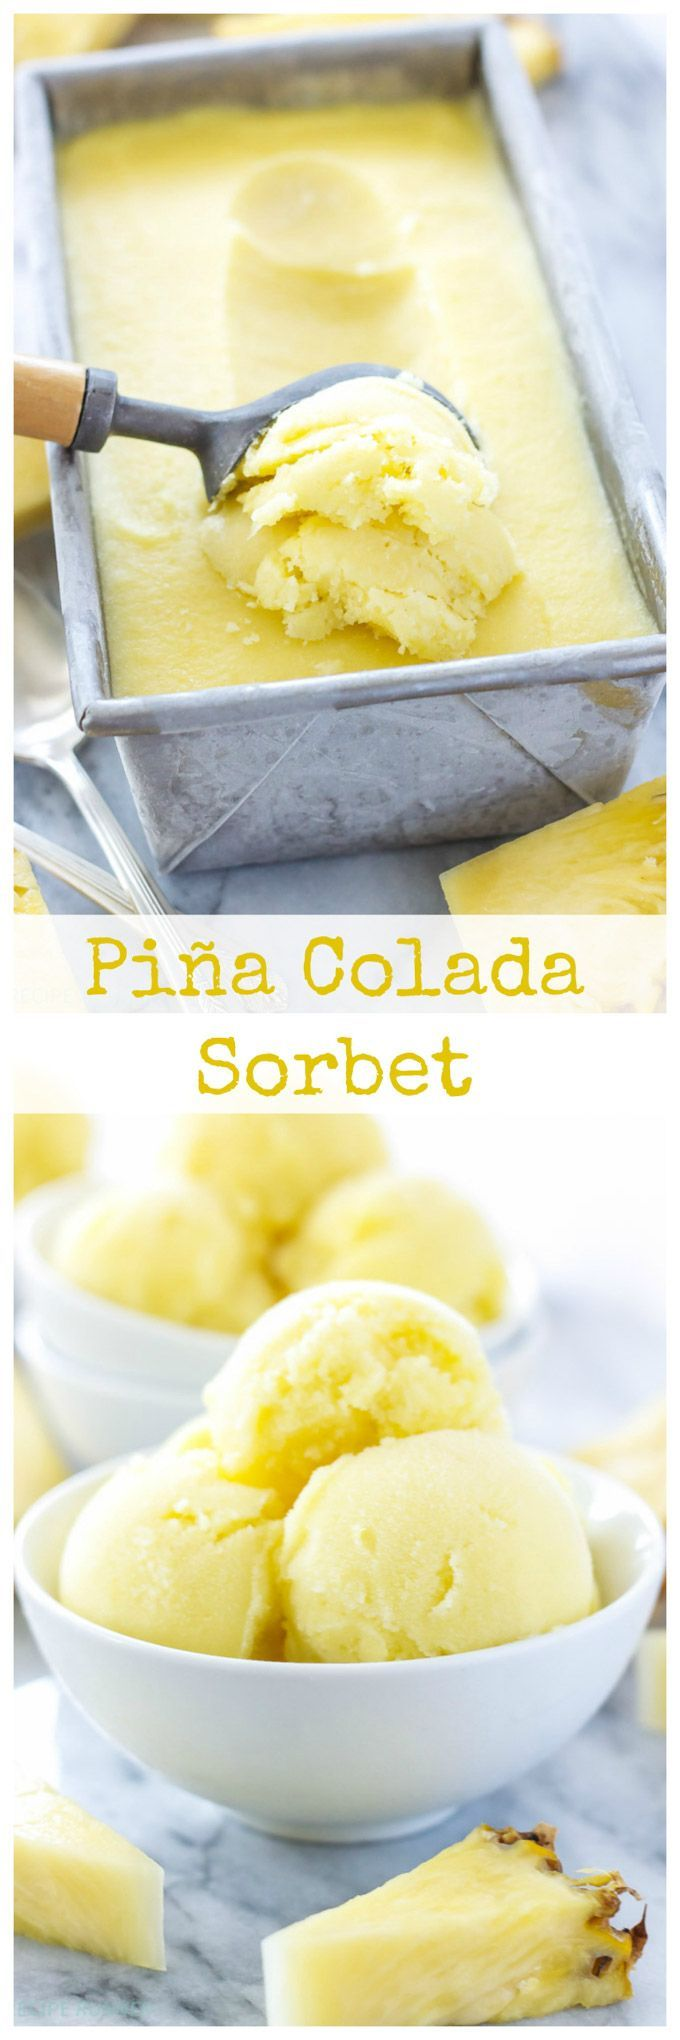 Piña Colada Sorbet | Pineapple, coconut, and a hint of rum make this sorbet the perfect end of summer treat!